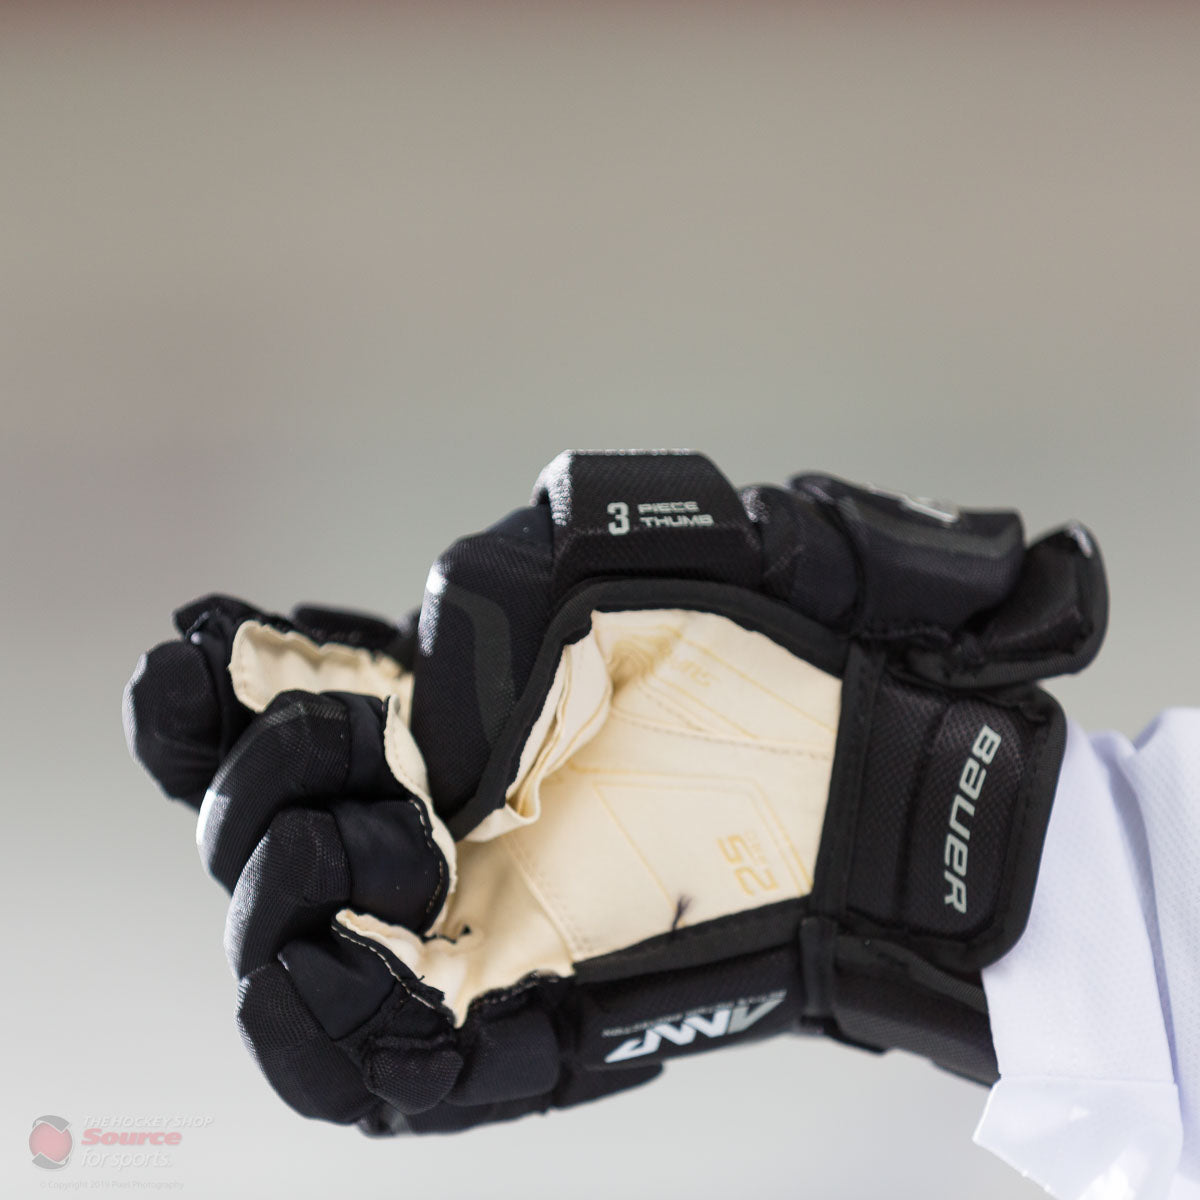 Bauer Supreme 2S Pro Junior Hockey Gloves